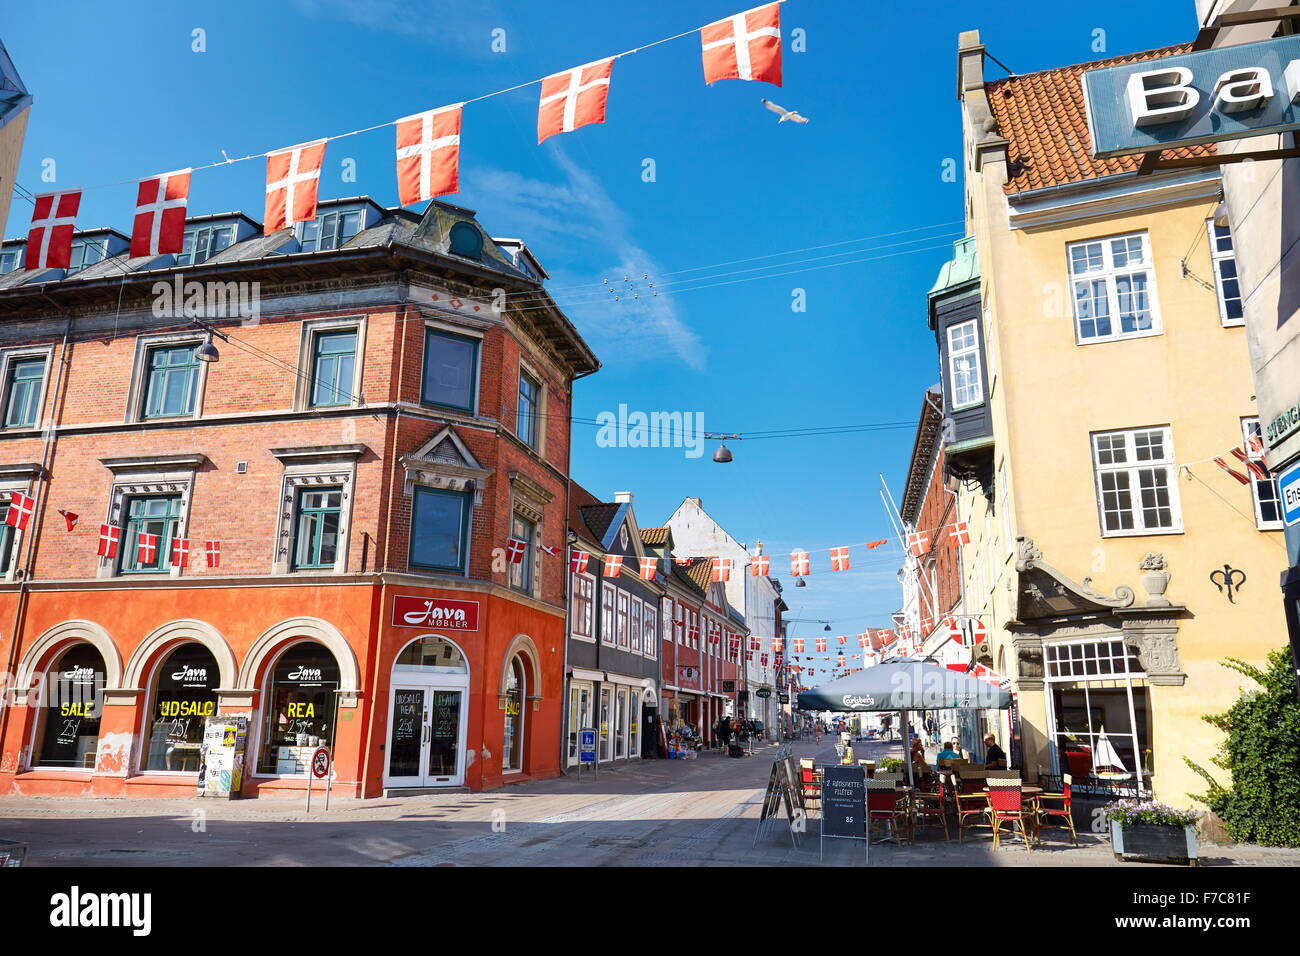 Old town in Helsingor city, Denmark - Stock Image